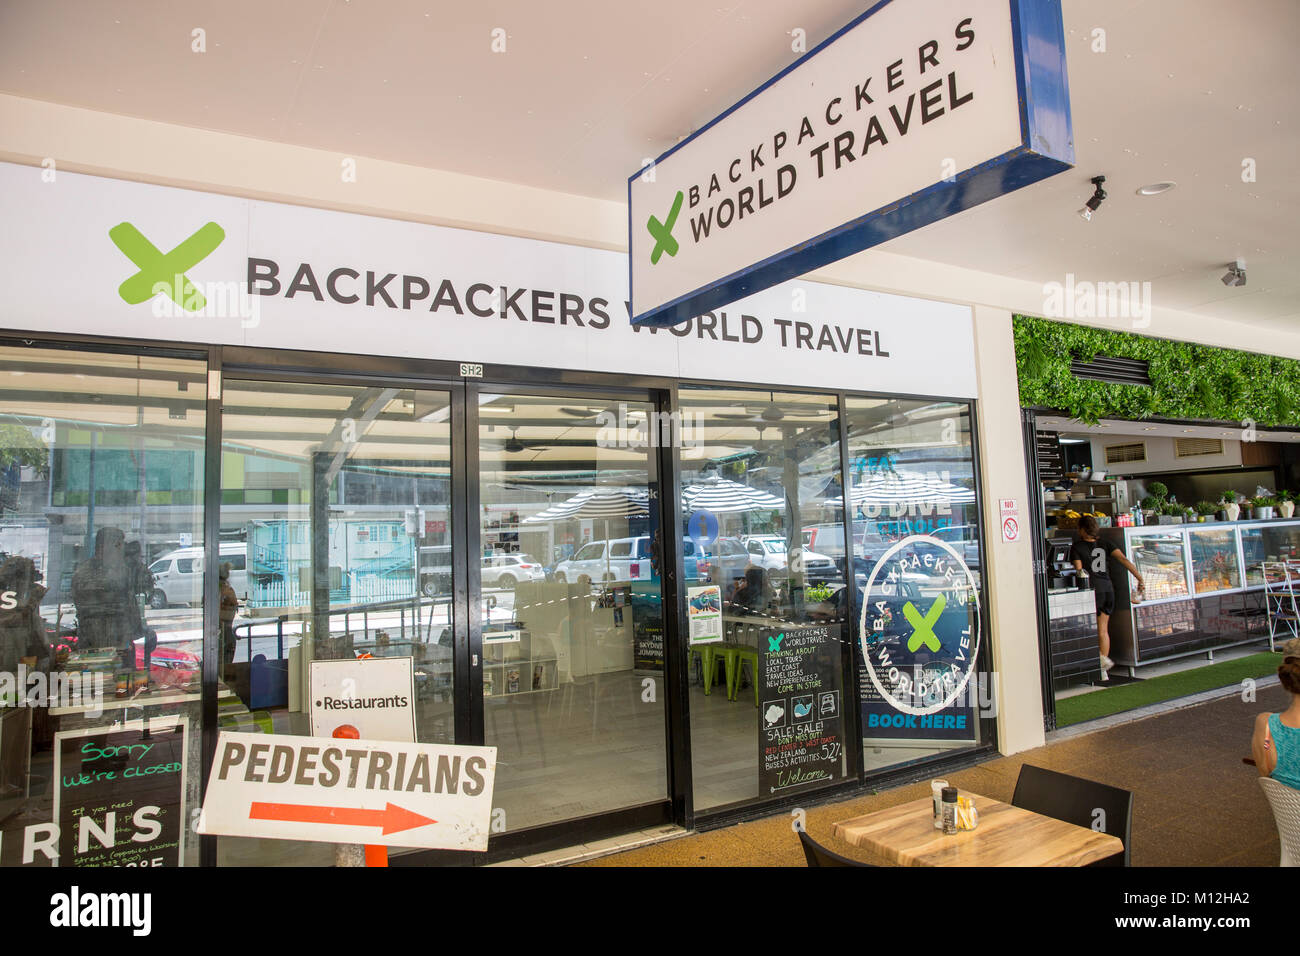 Travel agency Backpackers World Travel in Cairns city centre